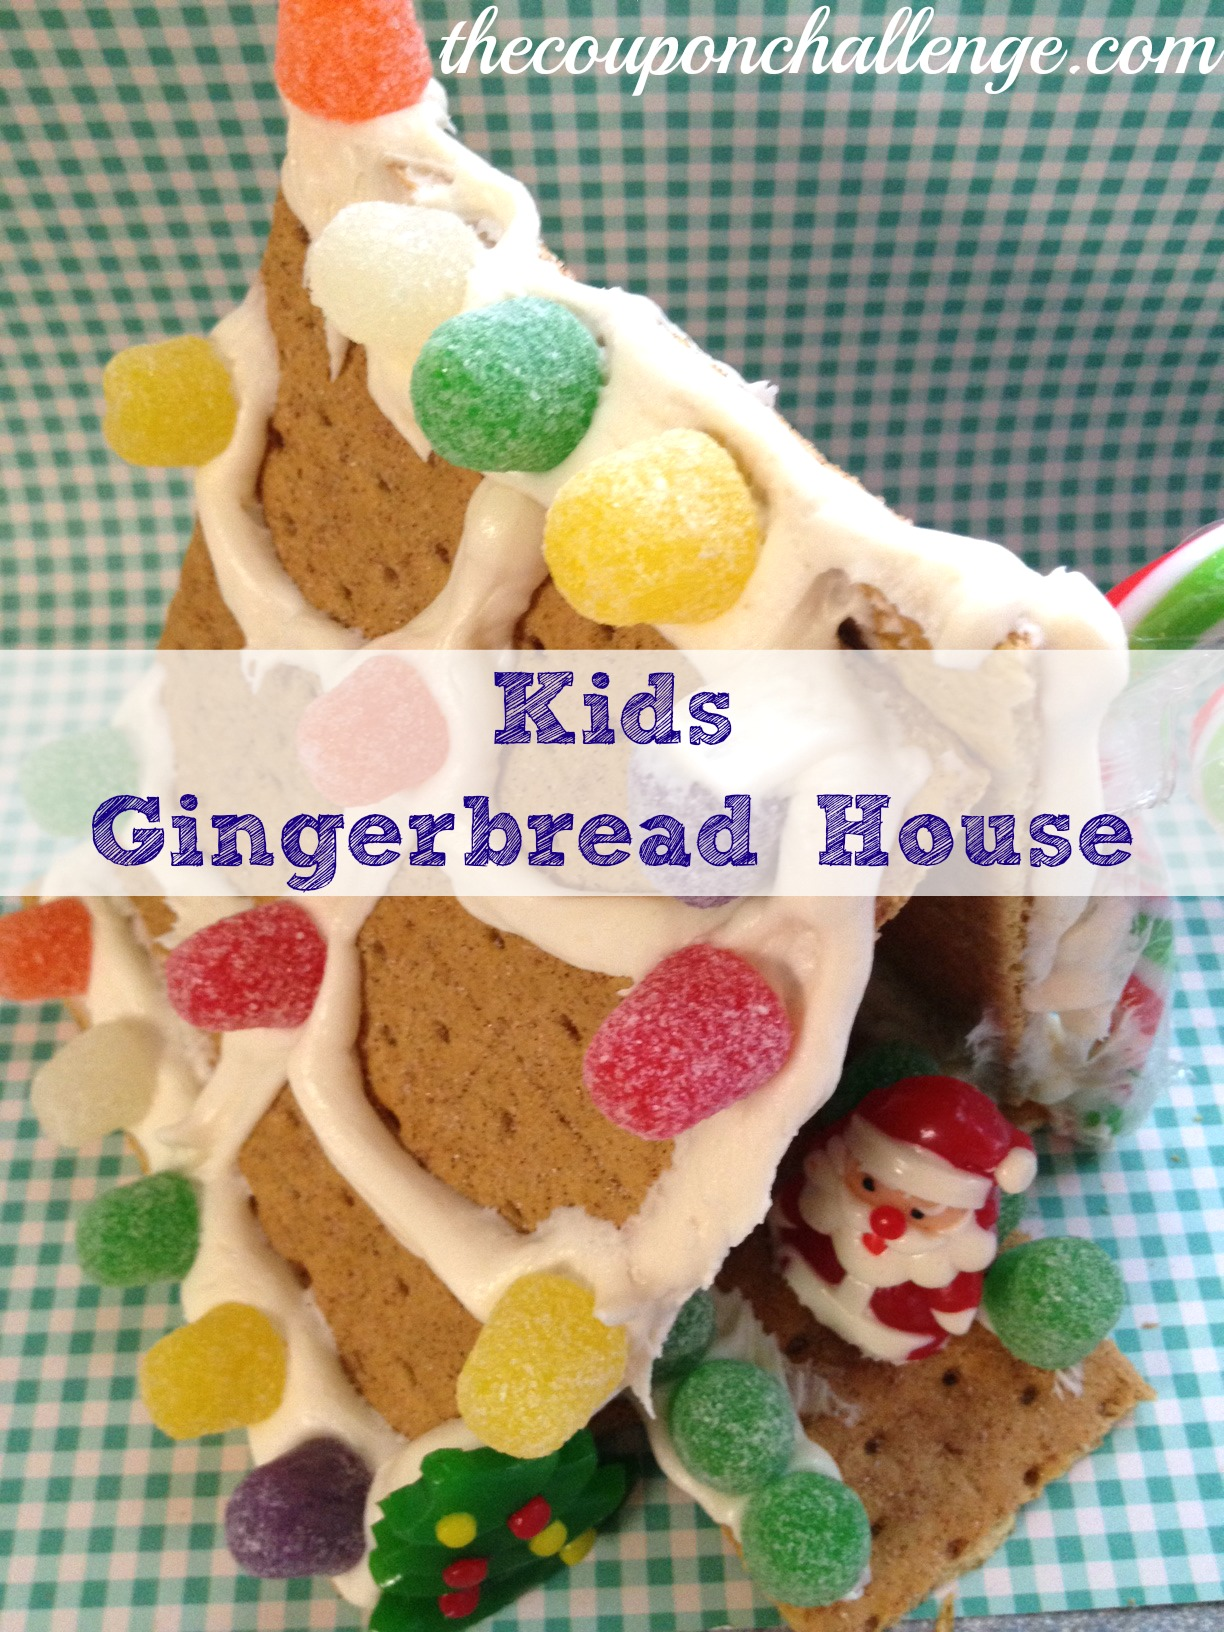 Gingerbread house archives the coupon challenge for How do you make a gingerbread house